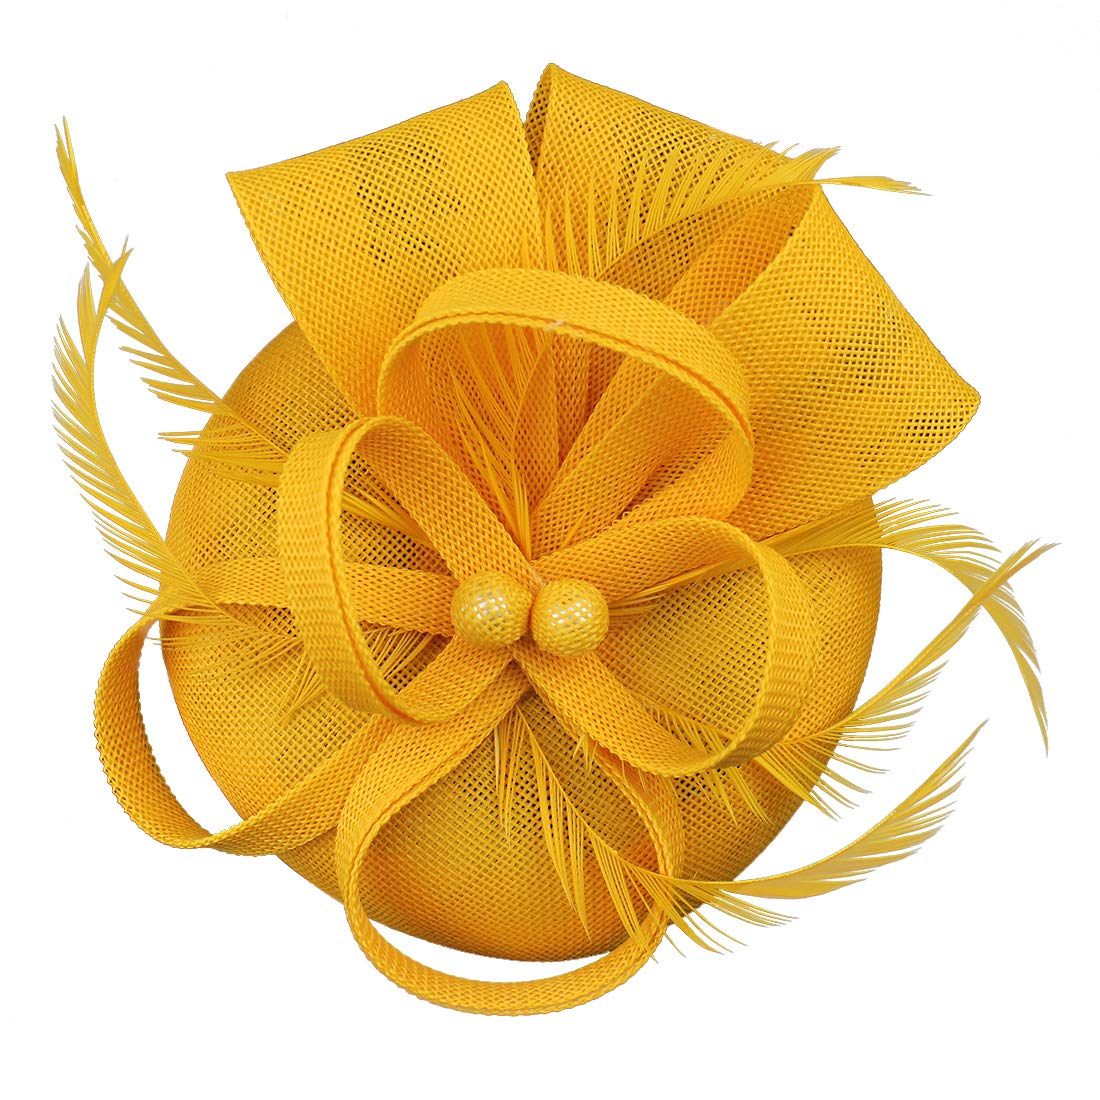 Fascinator Feather Fascinators for Women Pillbox Hat for Wedding Party Derby Royal Banquet Yellow